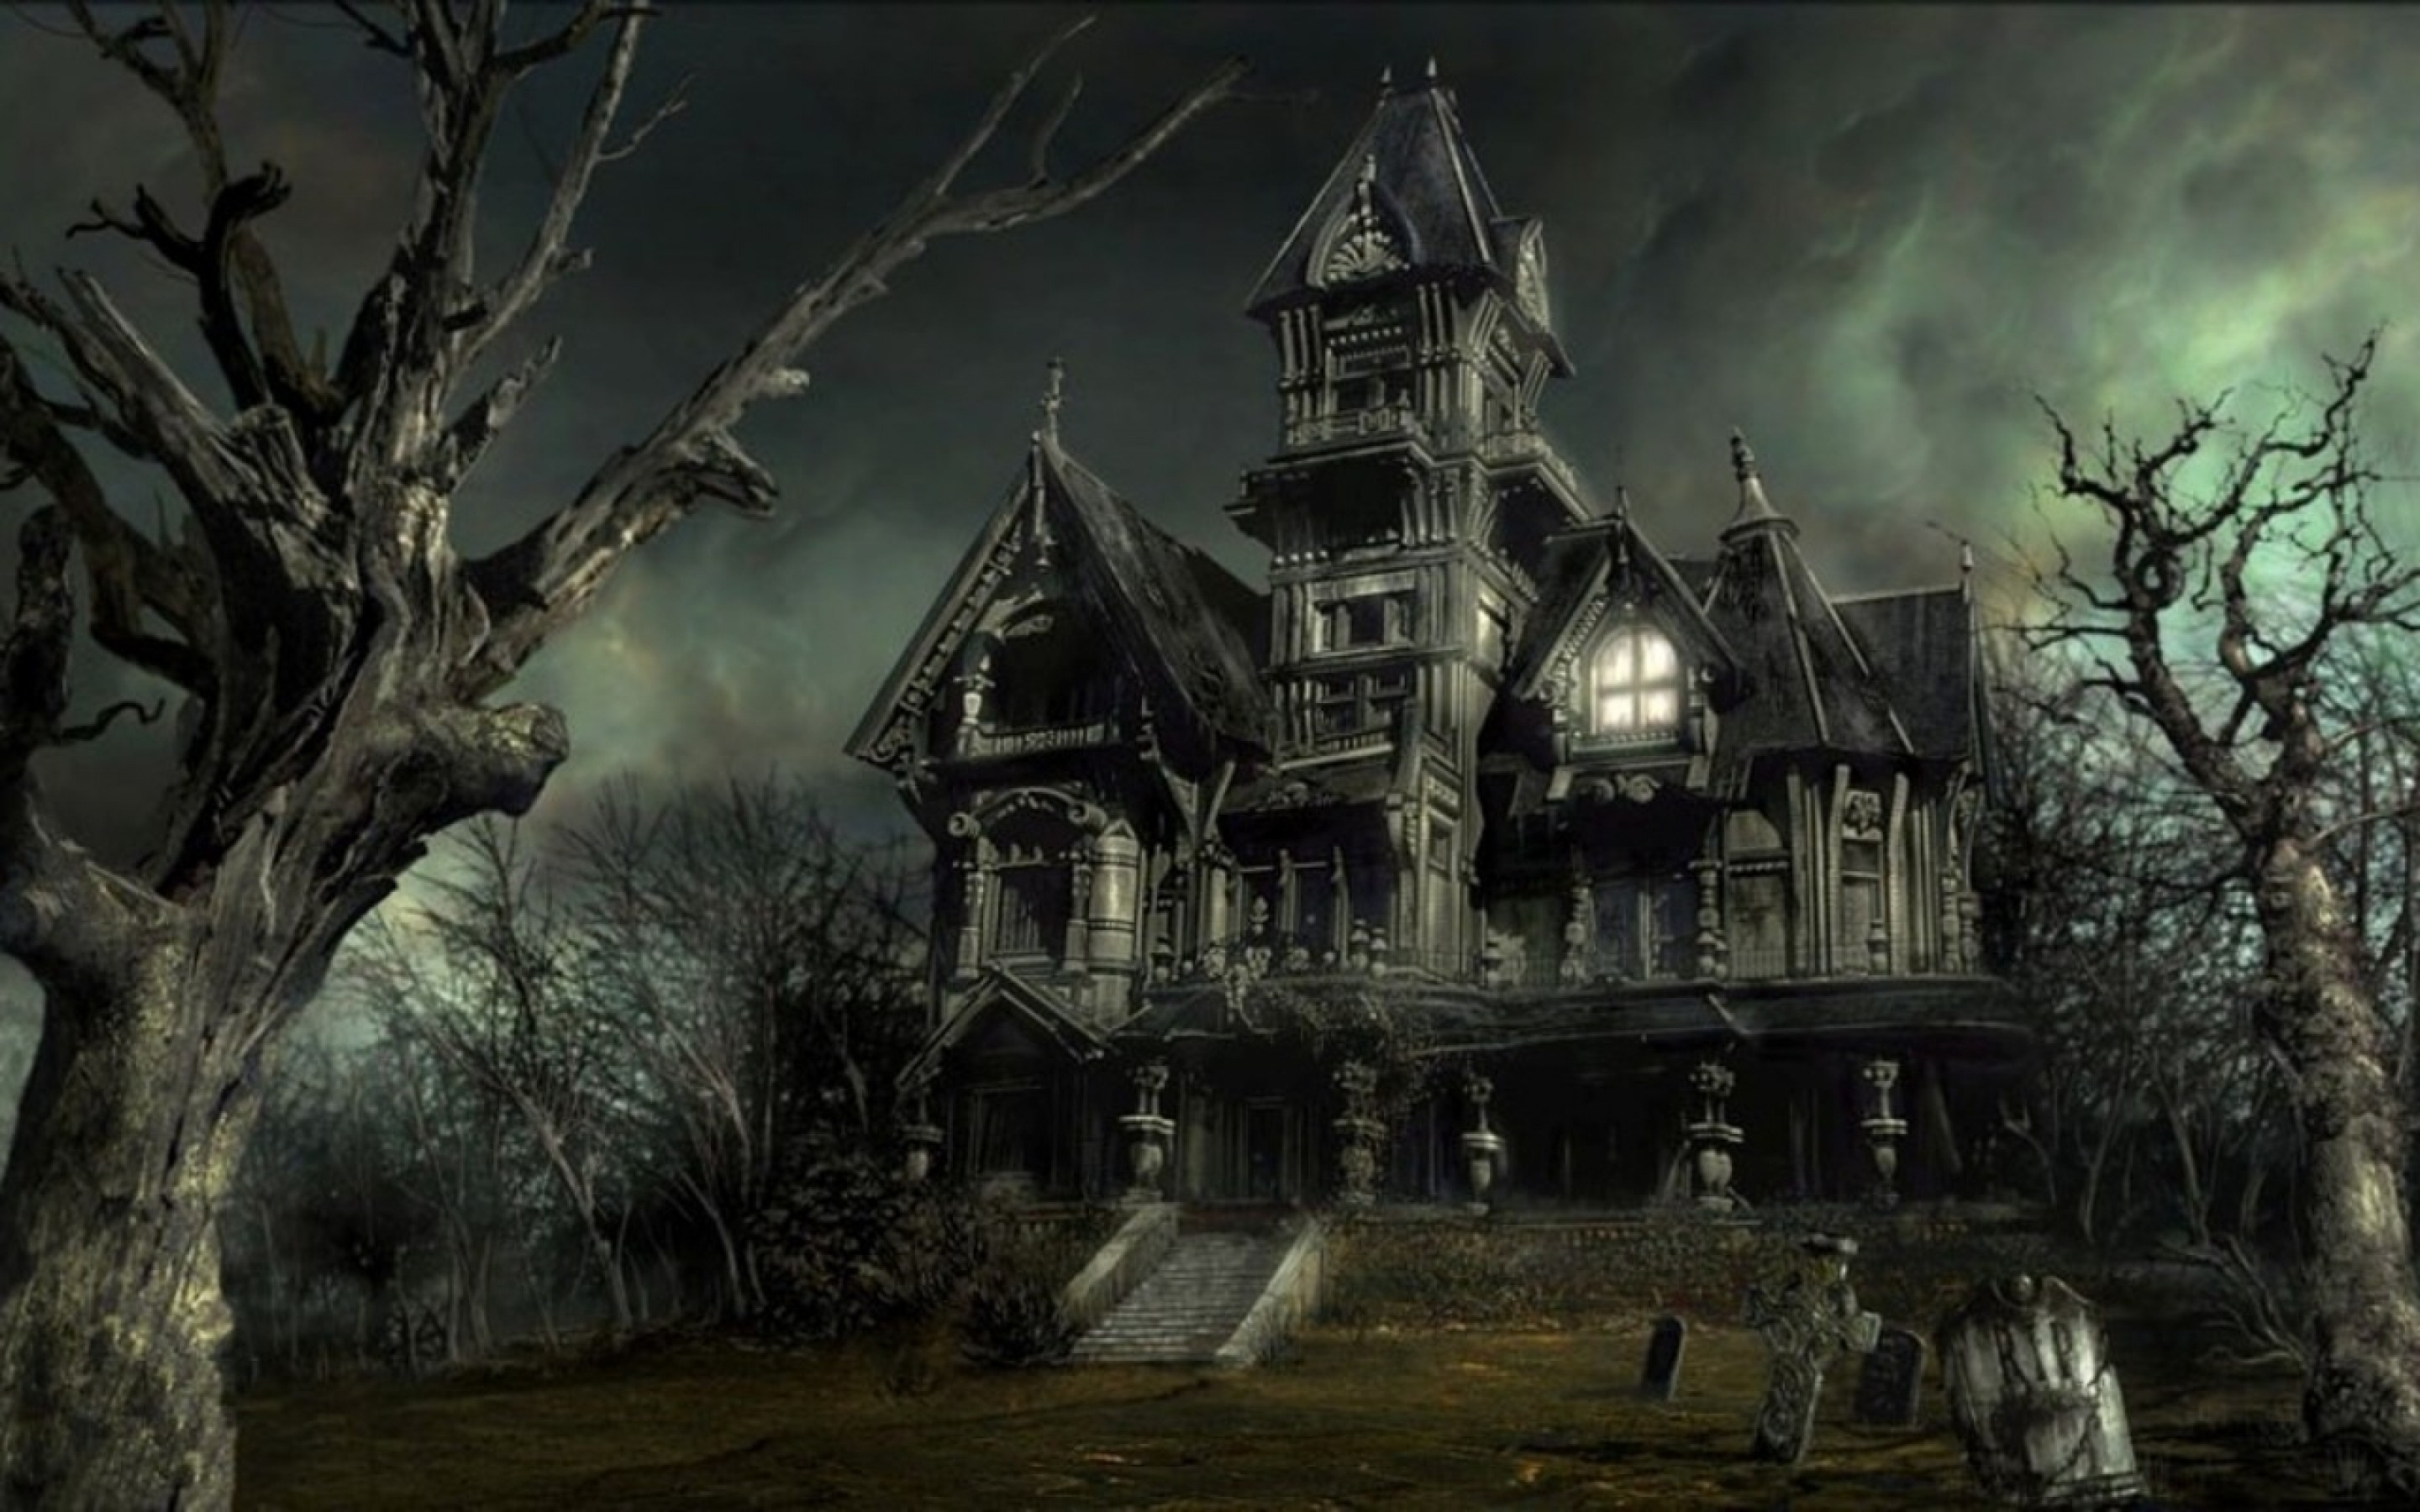 Haunted clipart inside haunted house House similar Inside wallpaper Haunted